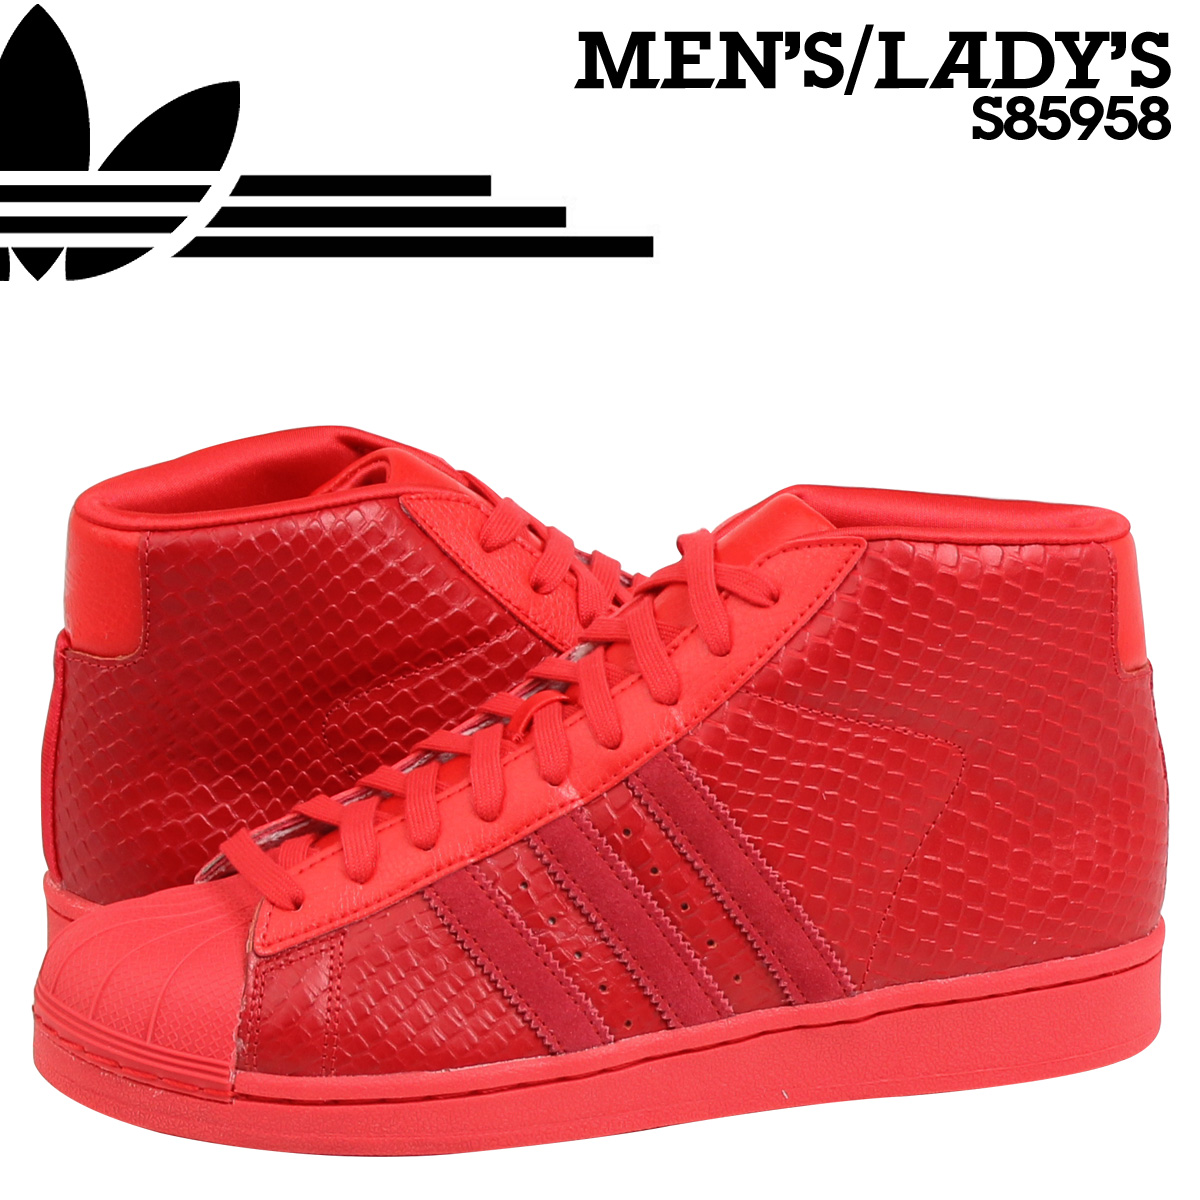 Adidas originals pro model adidas Originals sneakers PRO MODEL men gap Dis S85958 red